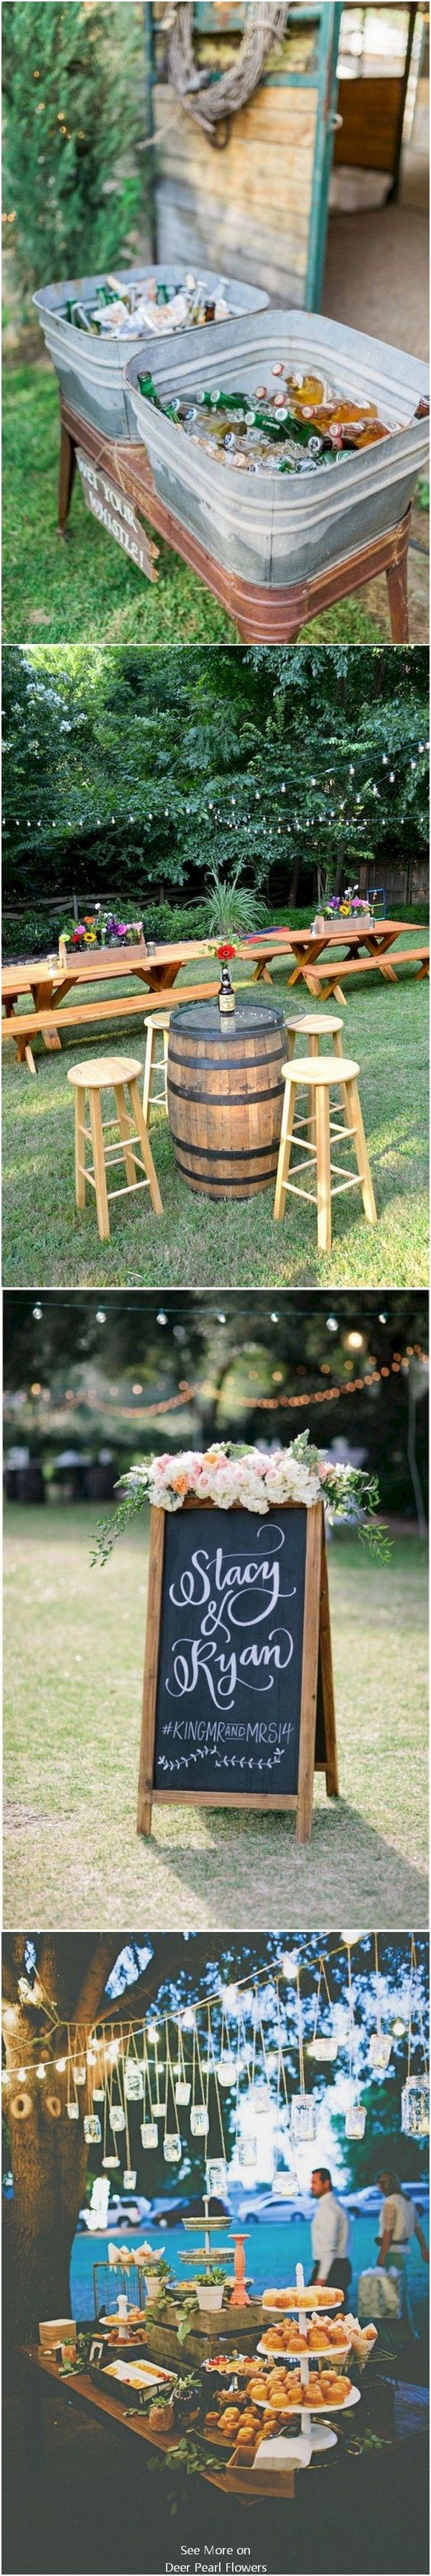 best 25 renewing vows ideas backyards ideas on pinterest